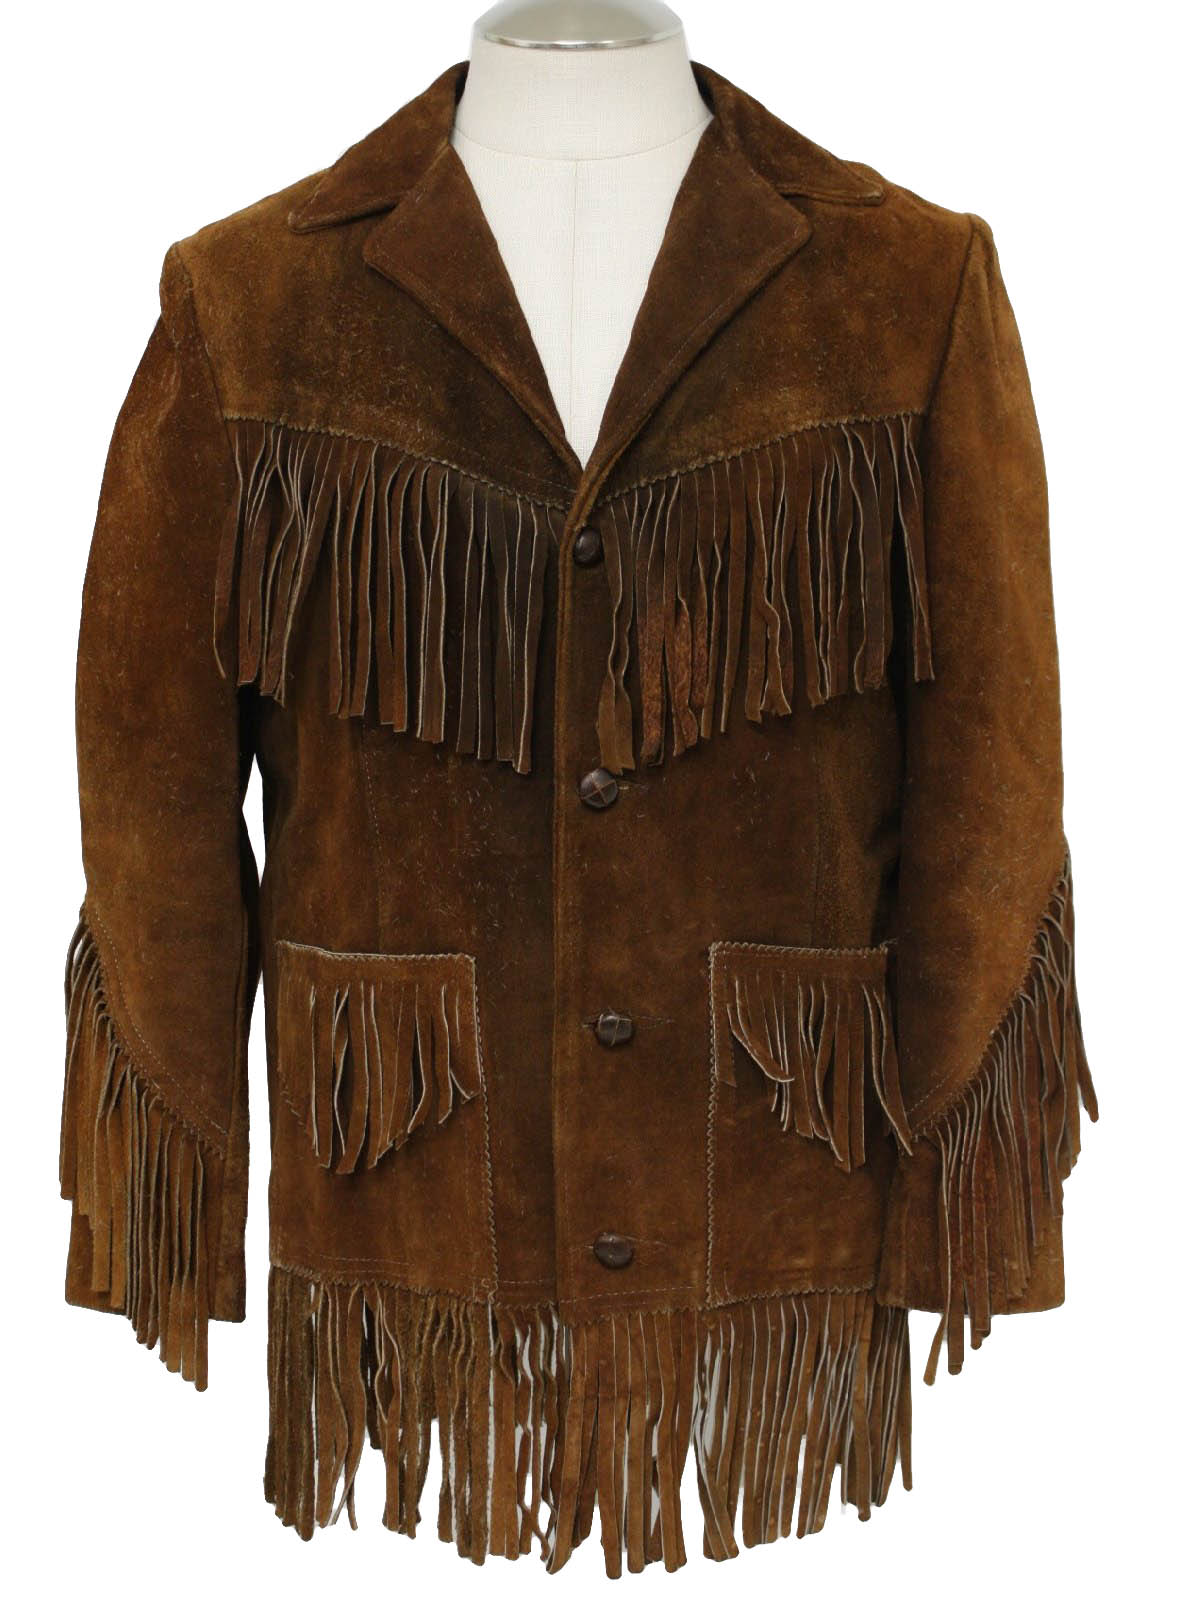 1960's Bufalo Mens Leather Jacket $99.00 Not in stock. Item No. 175169-MM8197